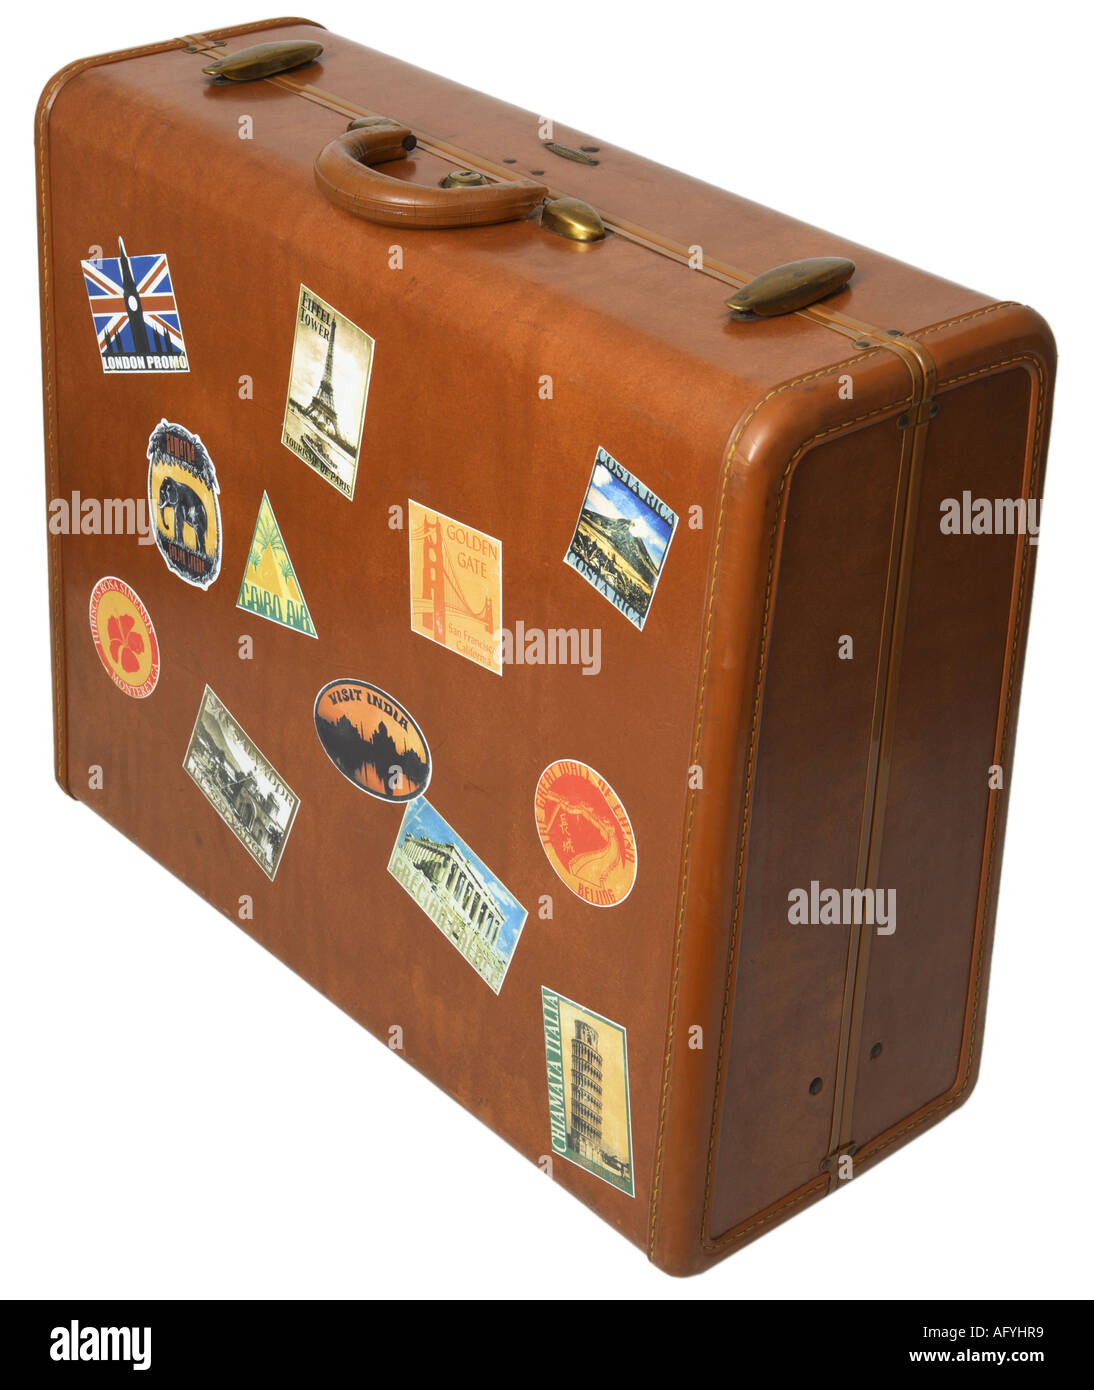 Suitcase with stickers - Stock Image